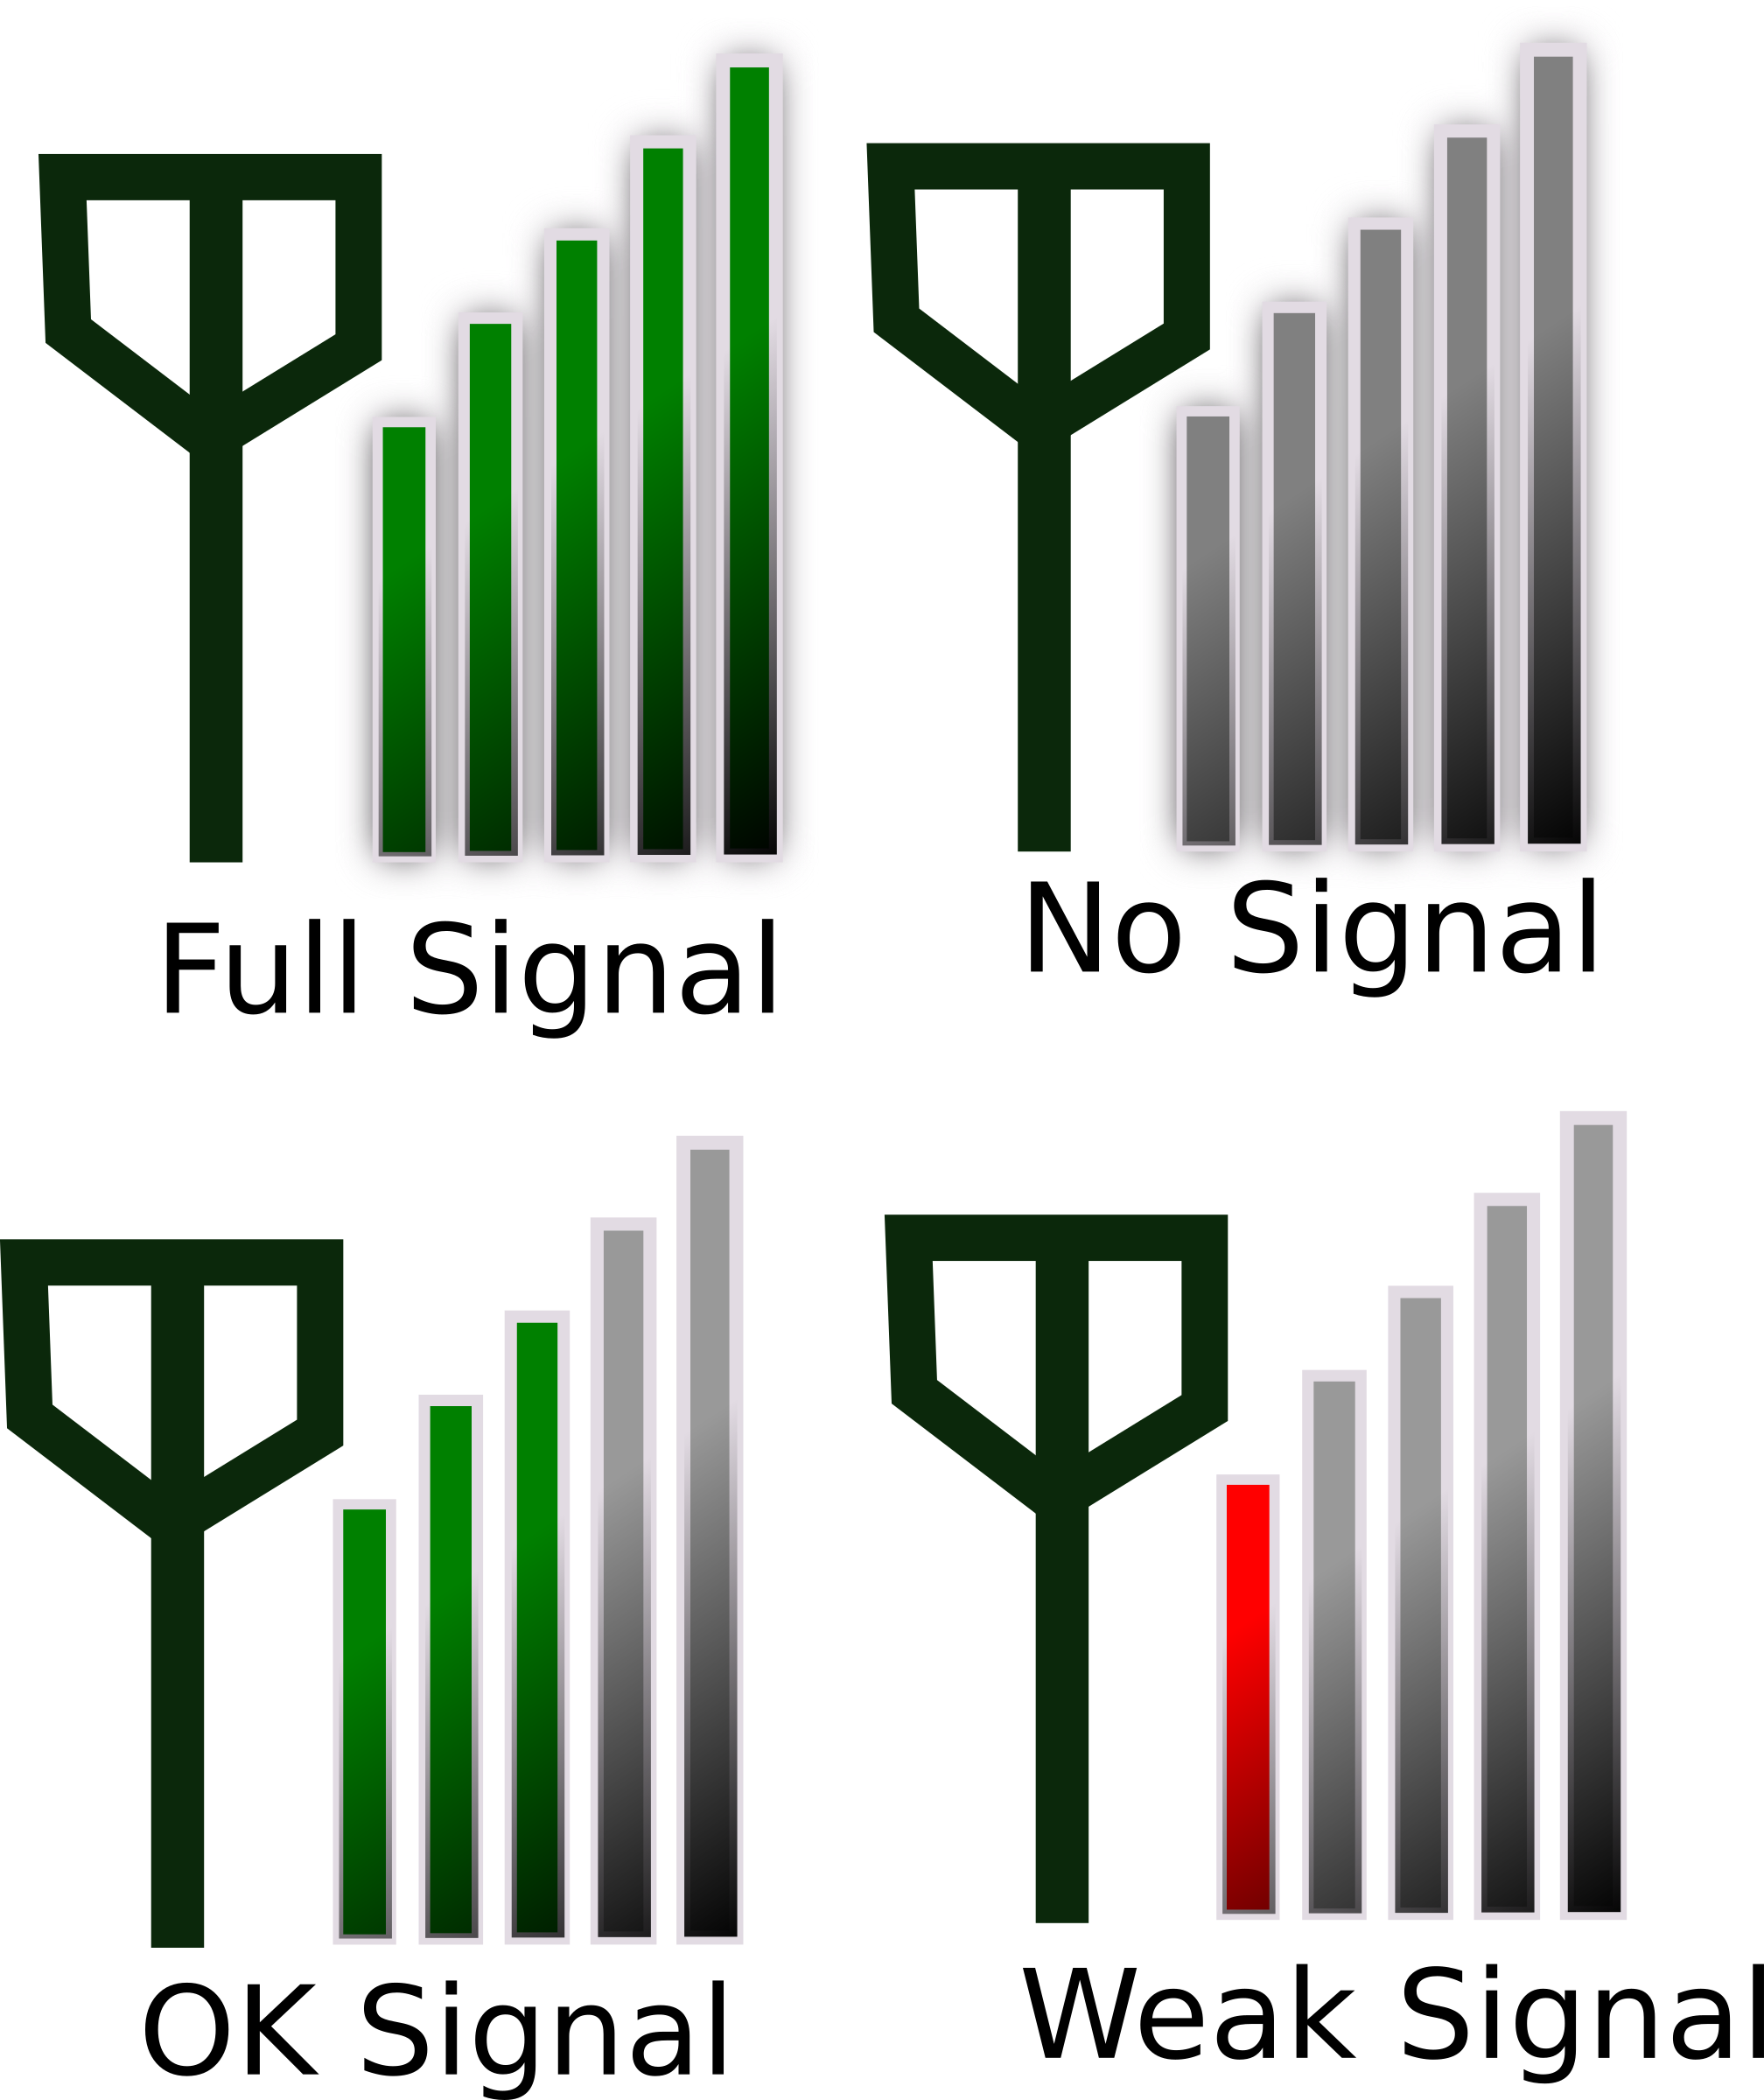 clipart signal strength icon for phone